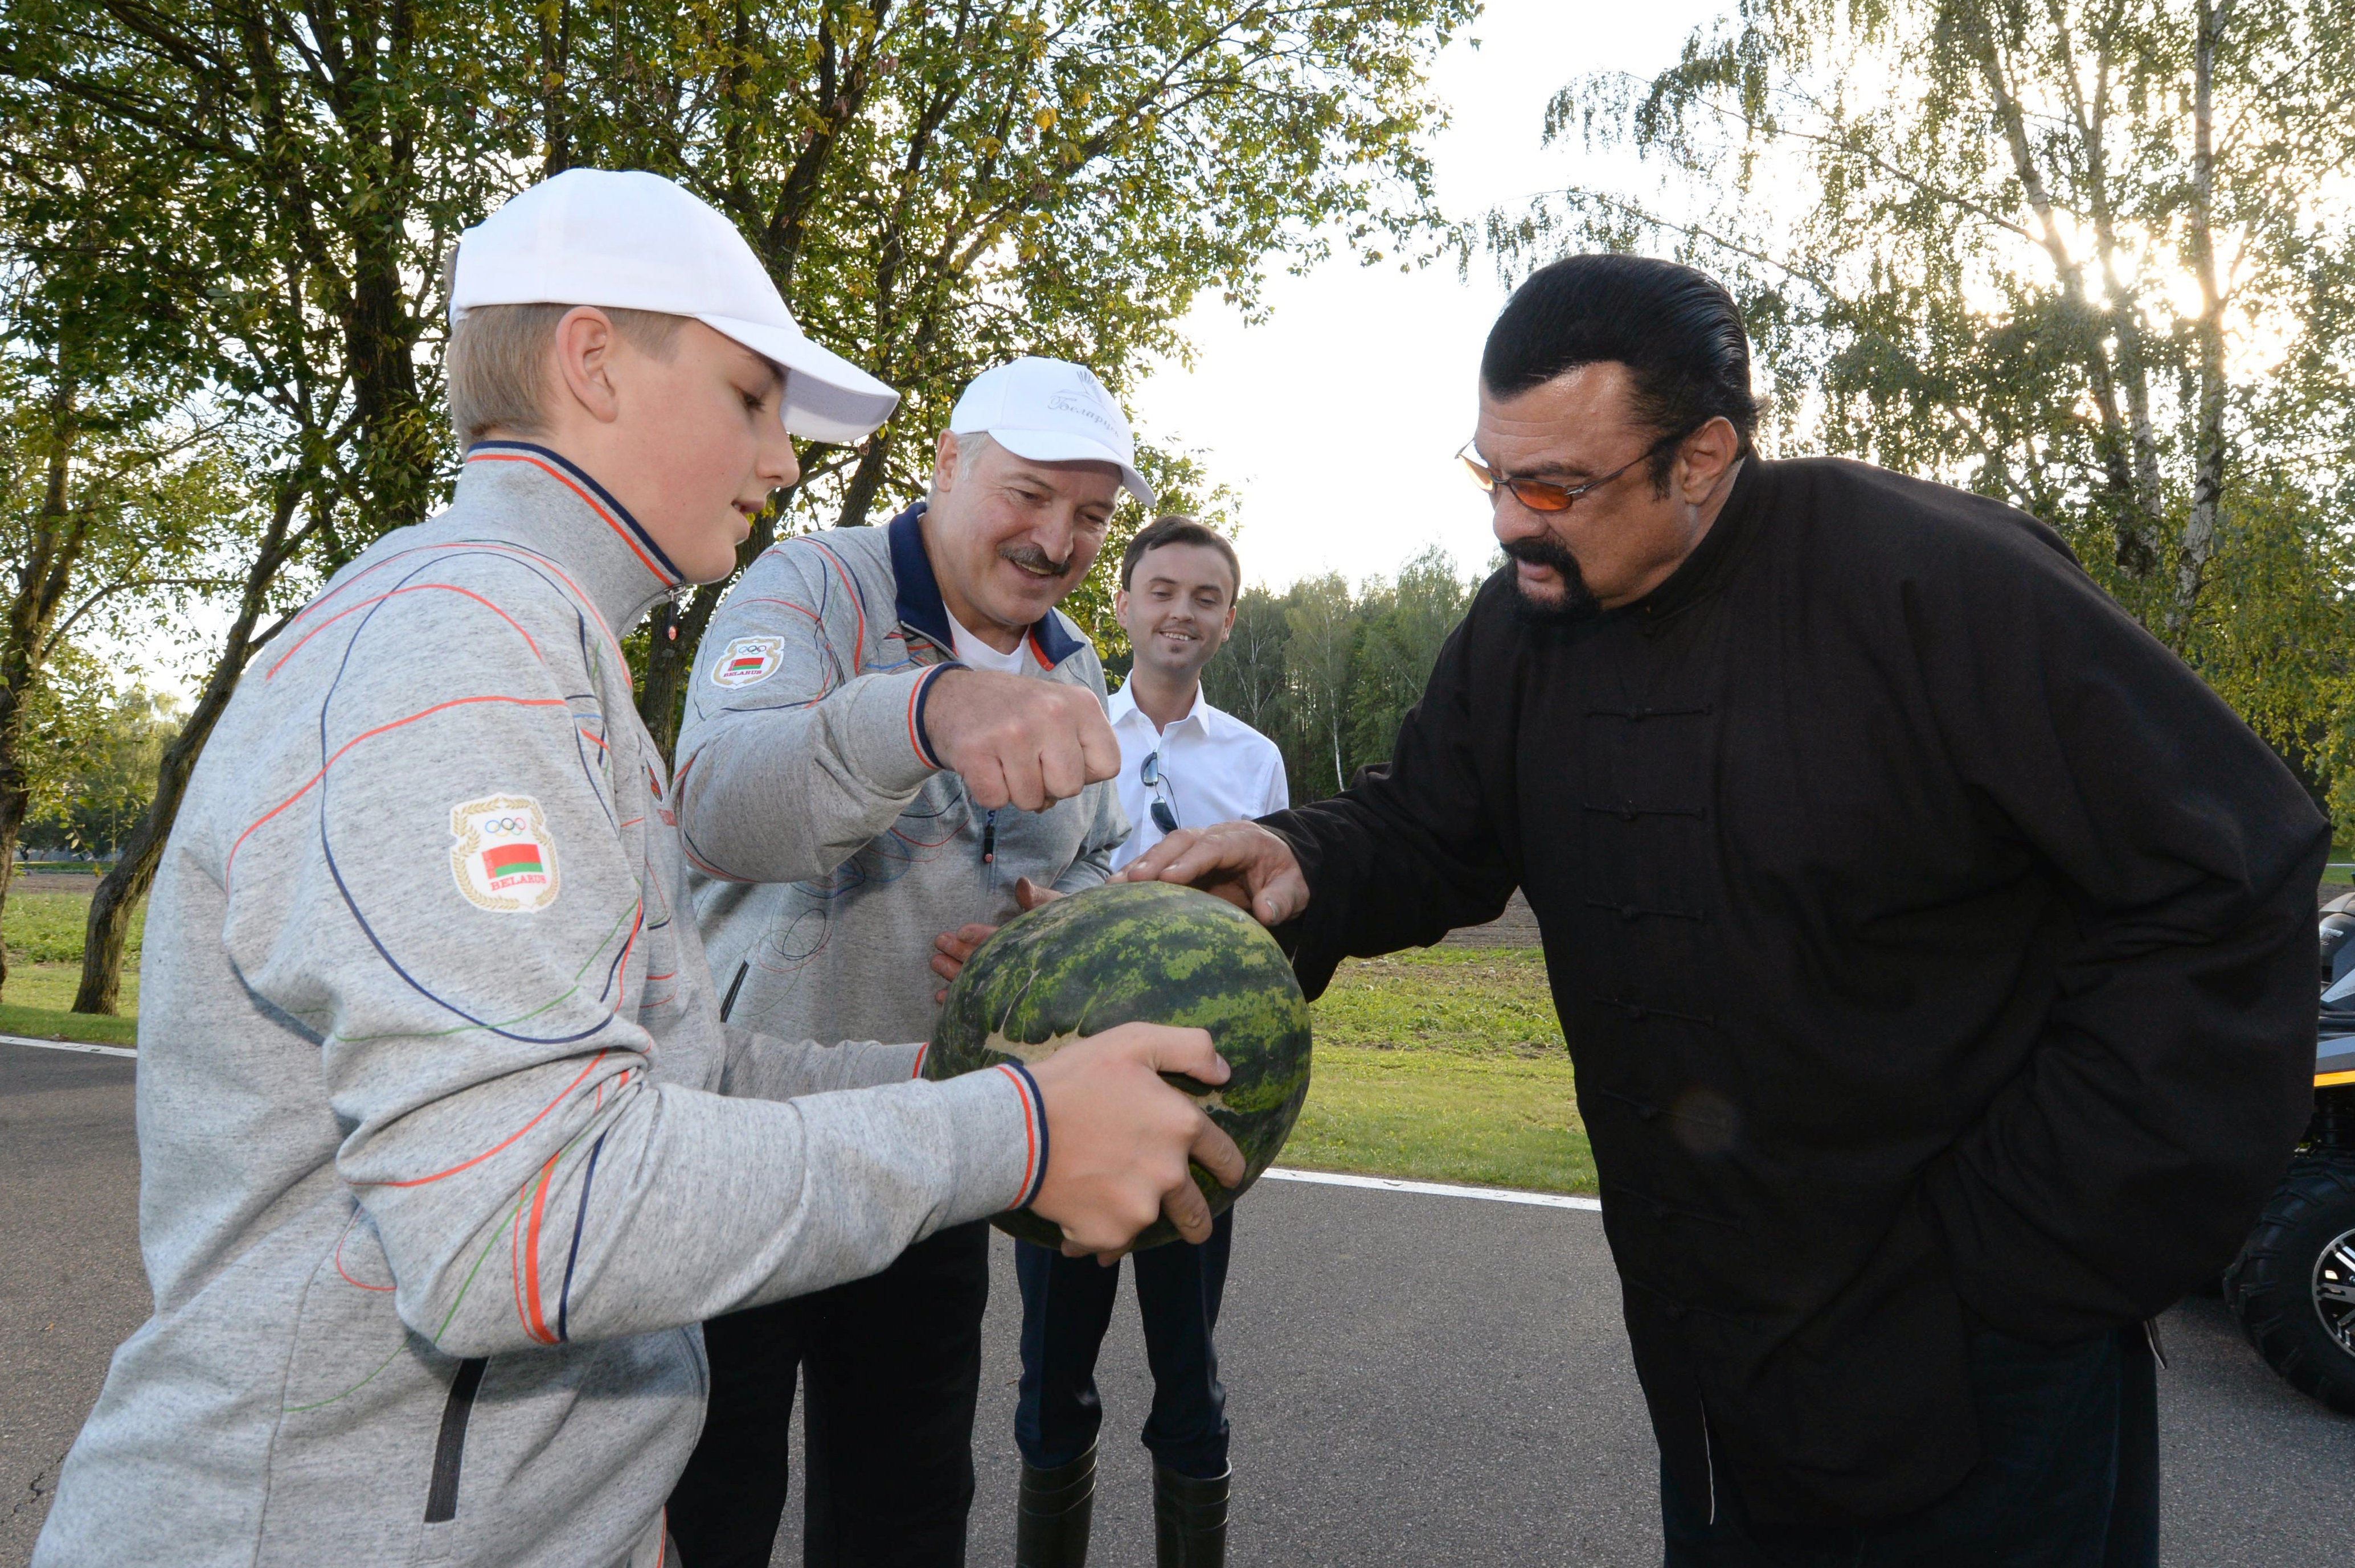 Belarus President Alexander Lukashenko (C) and his son Nikolai (L) hand over a watermelon to US actor Steven Seagal (R) who has been recenlty granted Serbian citizenship, during their meeting at their residence of Drozdy, outside Minsk